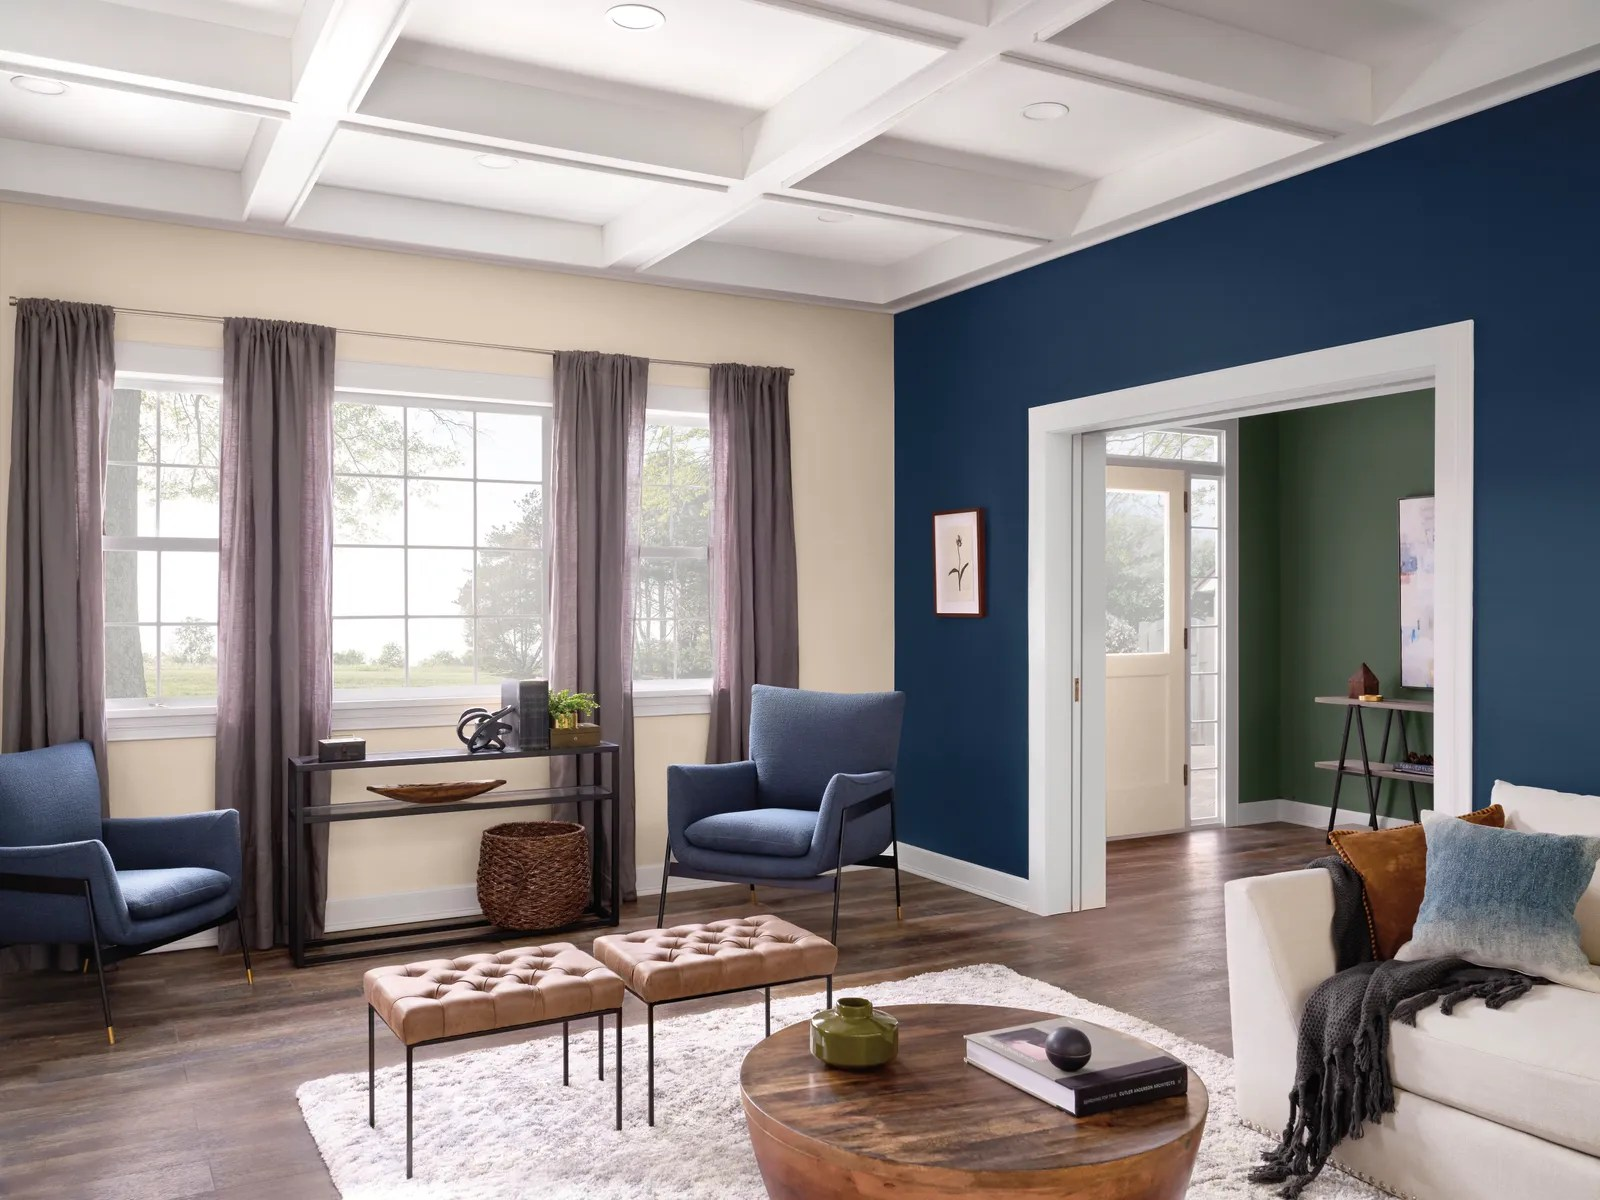 The Color Trends We Ll Be Seeing In 2020 According To